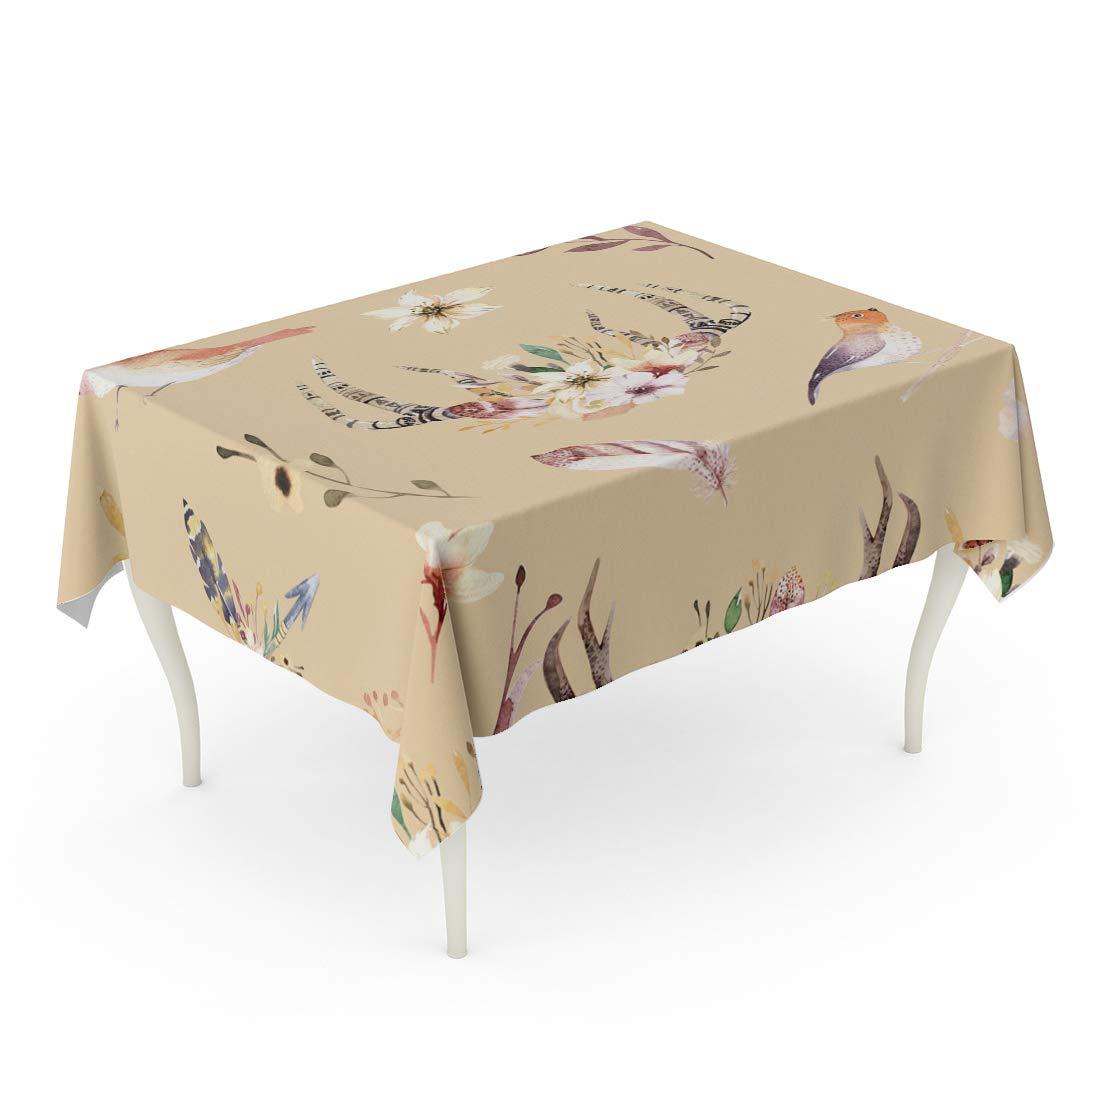 SIDONKU Bohemiamn Of Watercolor Floral Boho Antler Western Vintage Deer  Tablecloth Table Desk Cover Home Party Decor 60x120 Inch